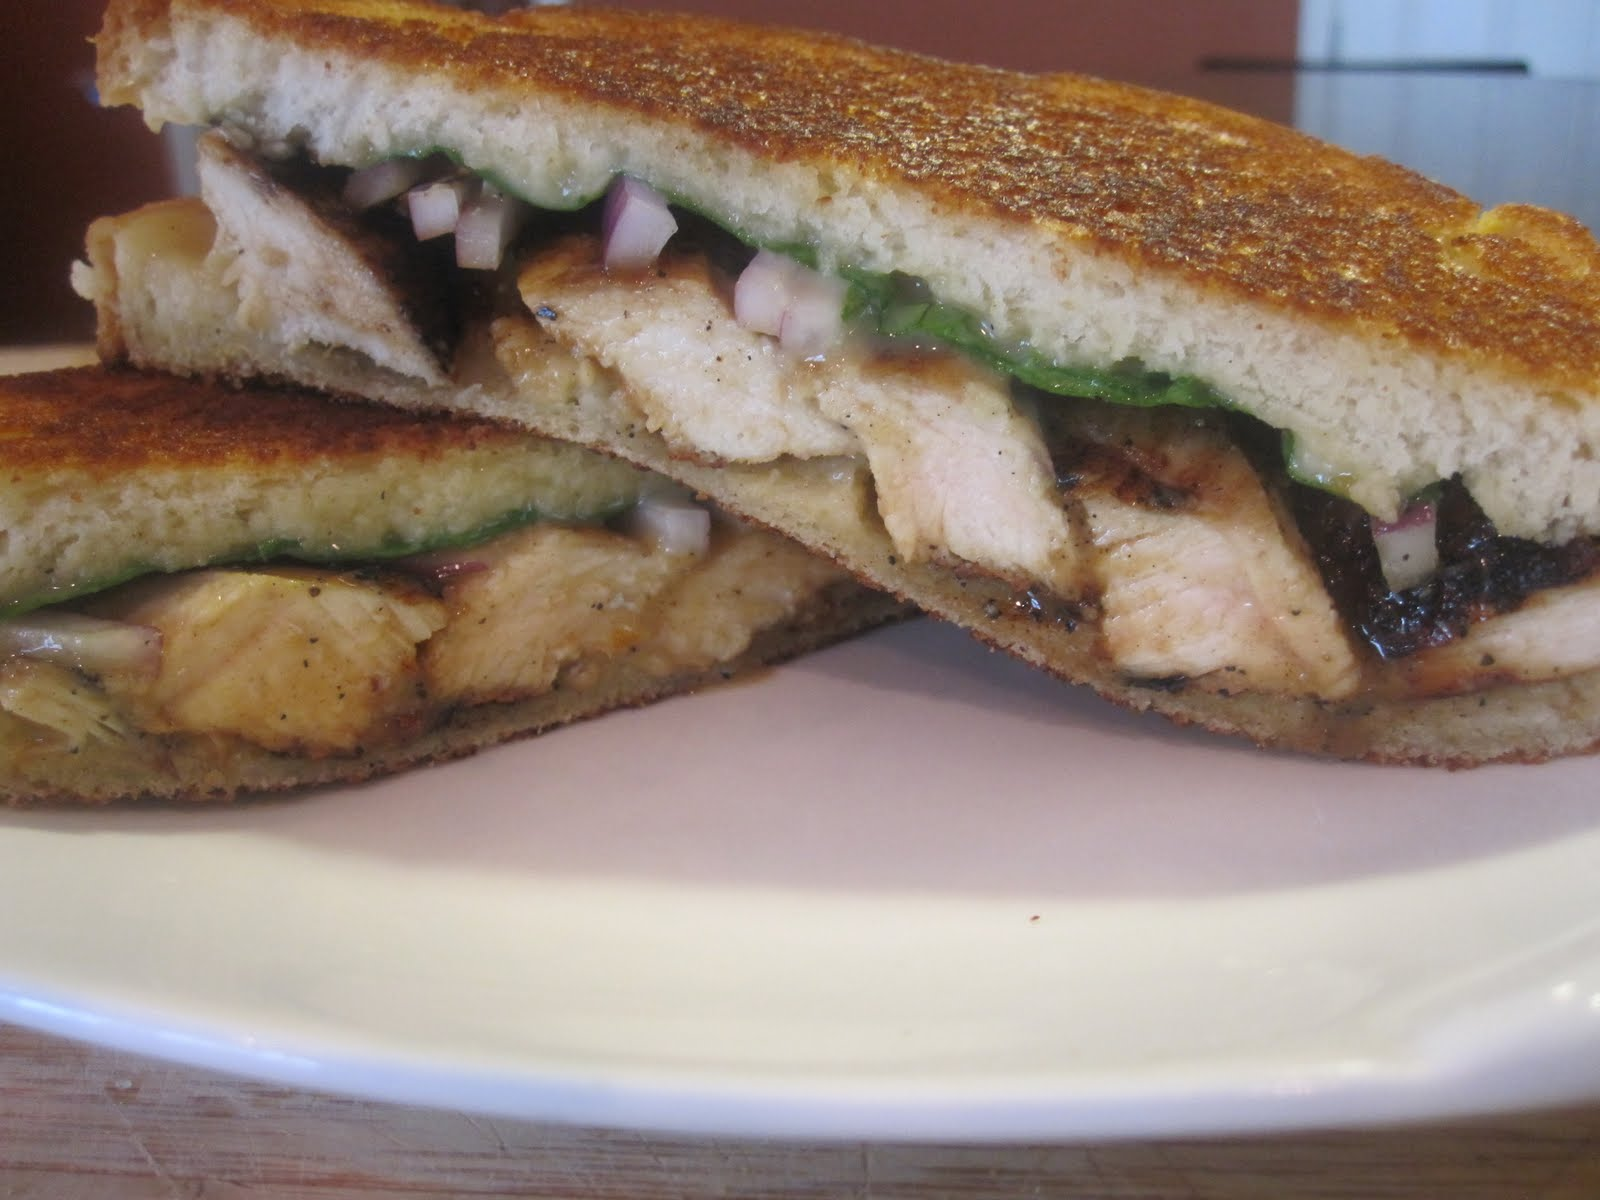 ... Soup and Pioneer Woman's Grilled Chicken Sandwich with Apricot Sauce